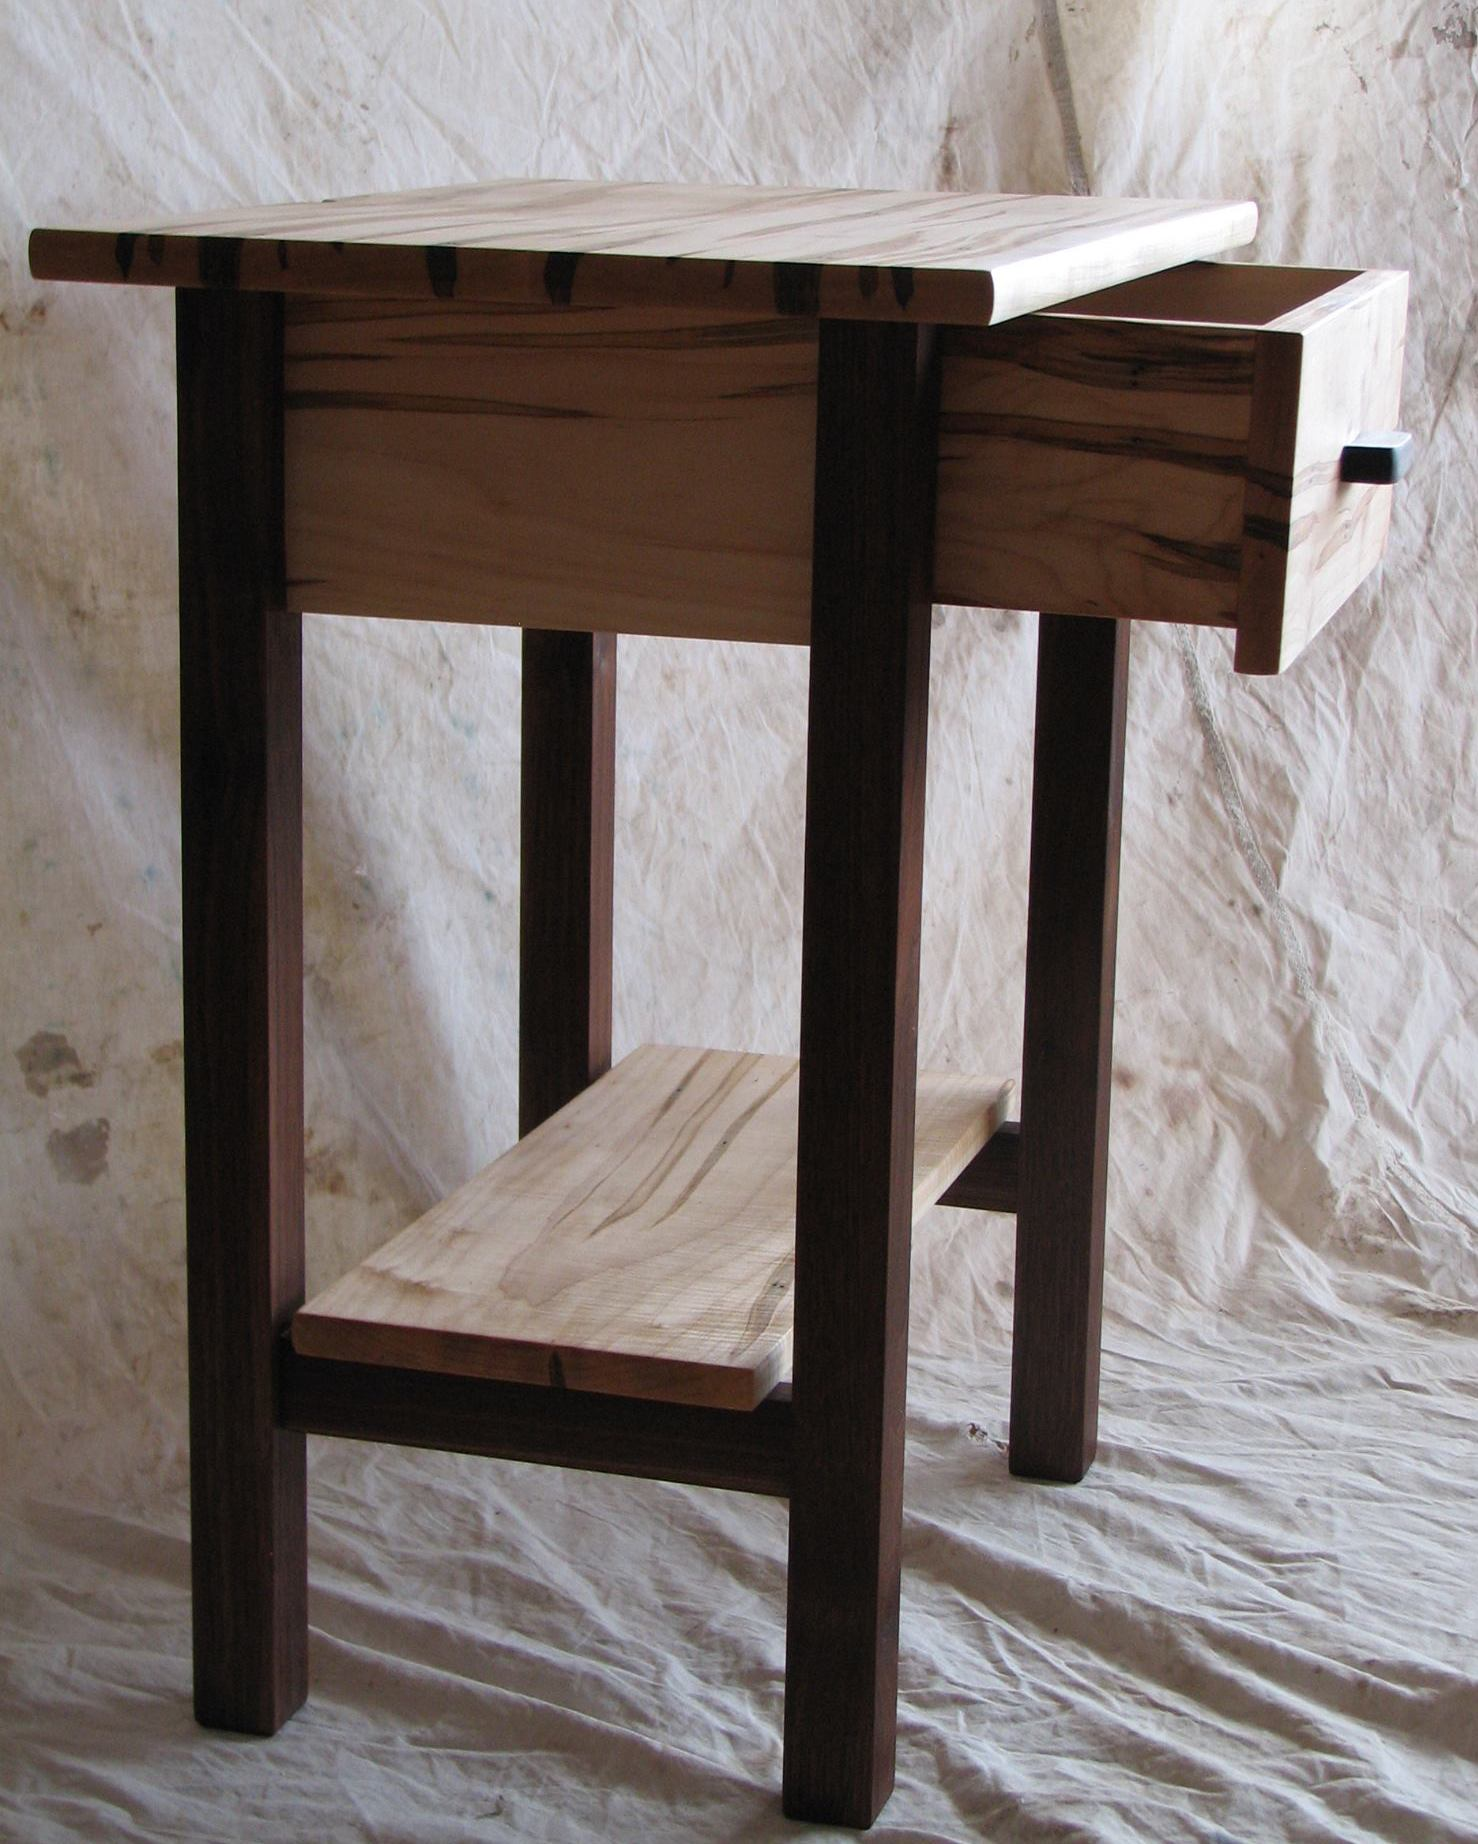 custom hand-made contemporary wooden furniture by Gary Havener